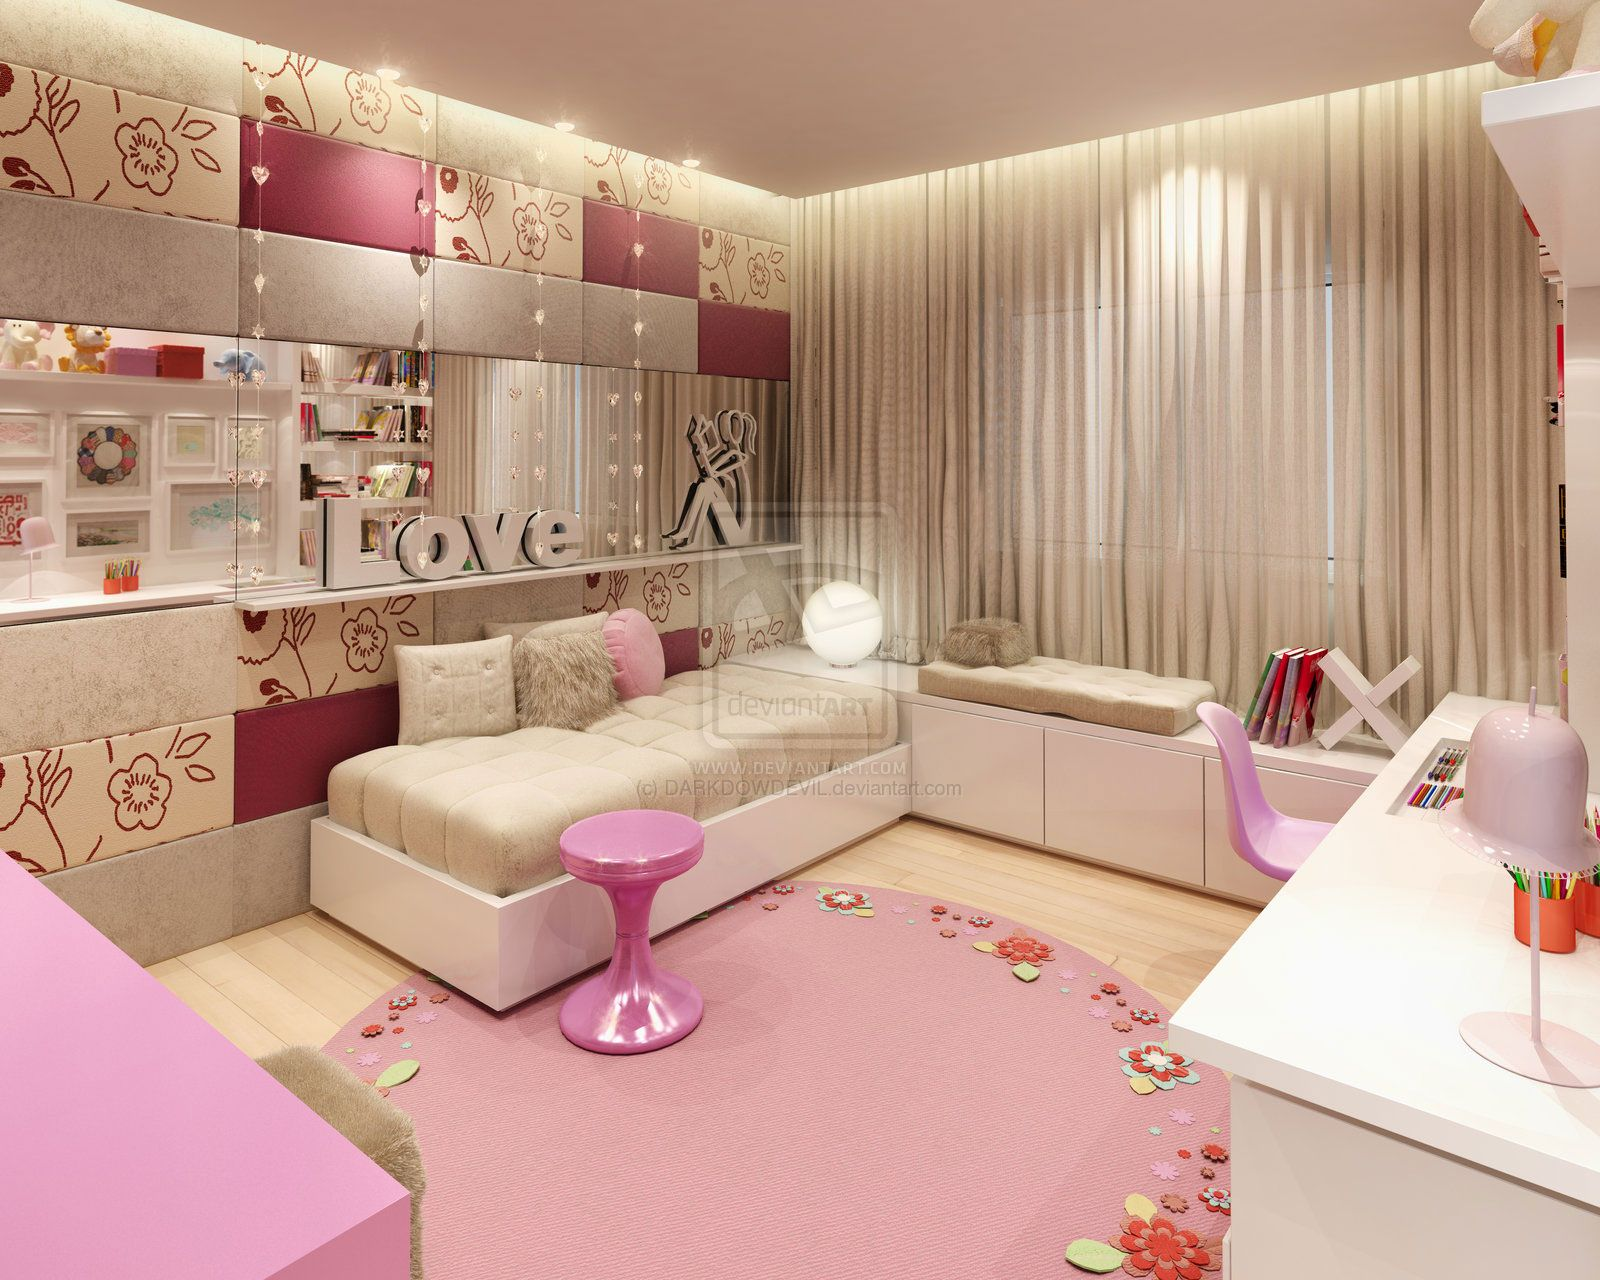 Teen room beauty teen room design by darkdowdevil trendy and